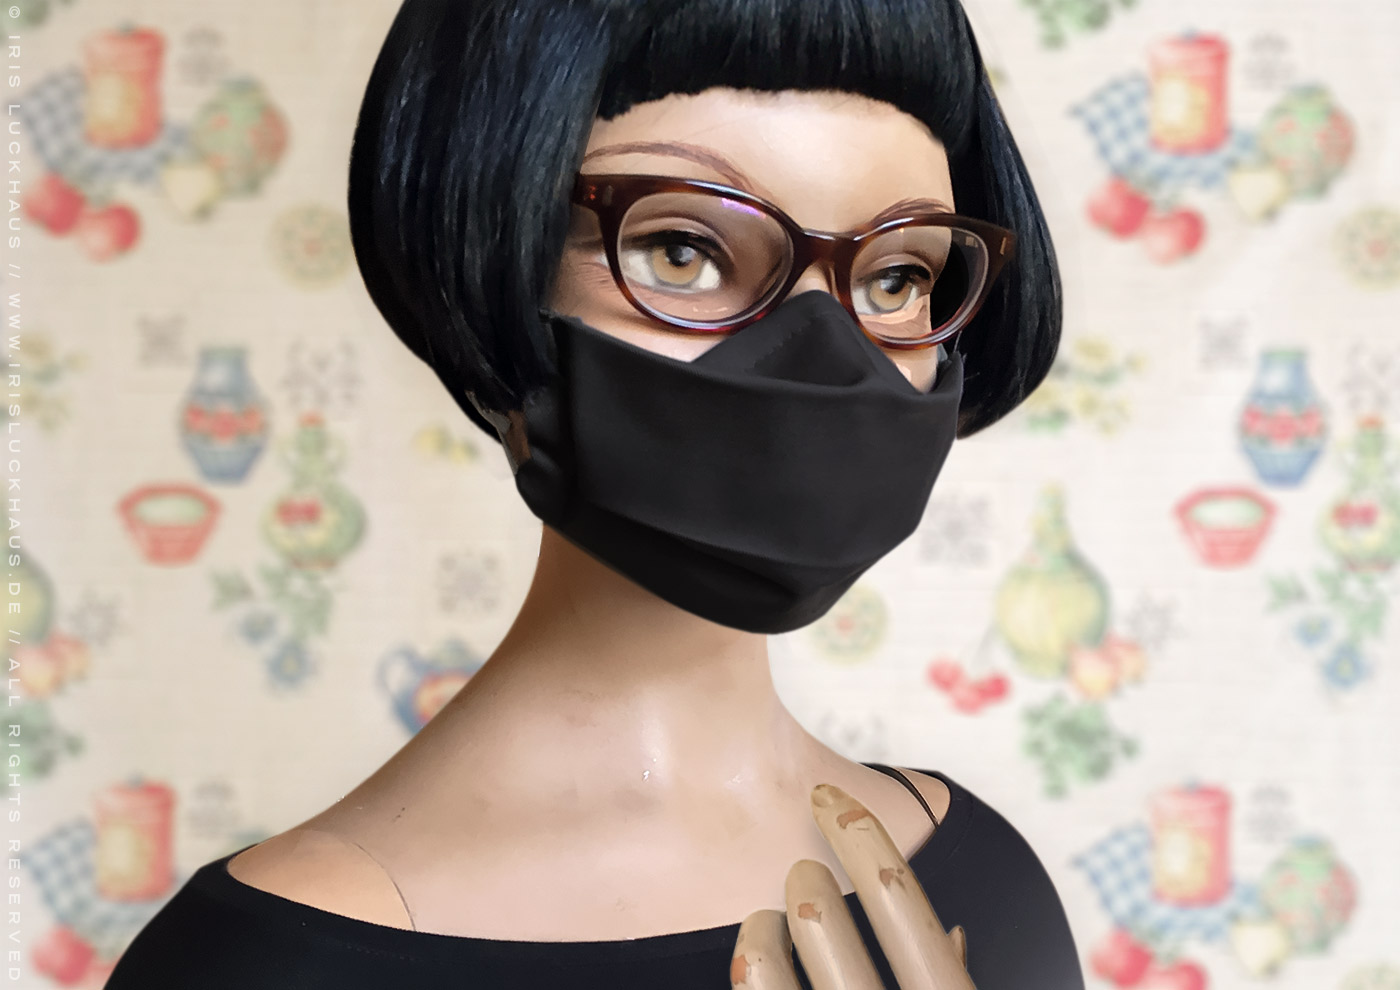 Luckhaus Hybrid Mask, face mask, cloth mask or face covering to sew or make with instructions, cutting pattern and templates, gapless and no fog for glasses wearers, non-slip and breathable thanks to a reverse fold or nose fold, with nose piece or nose wire, pleats, filter opening and side channels or casings for ear loops or head ties by Iris Luckhaus